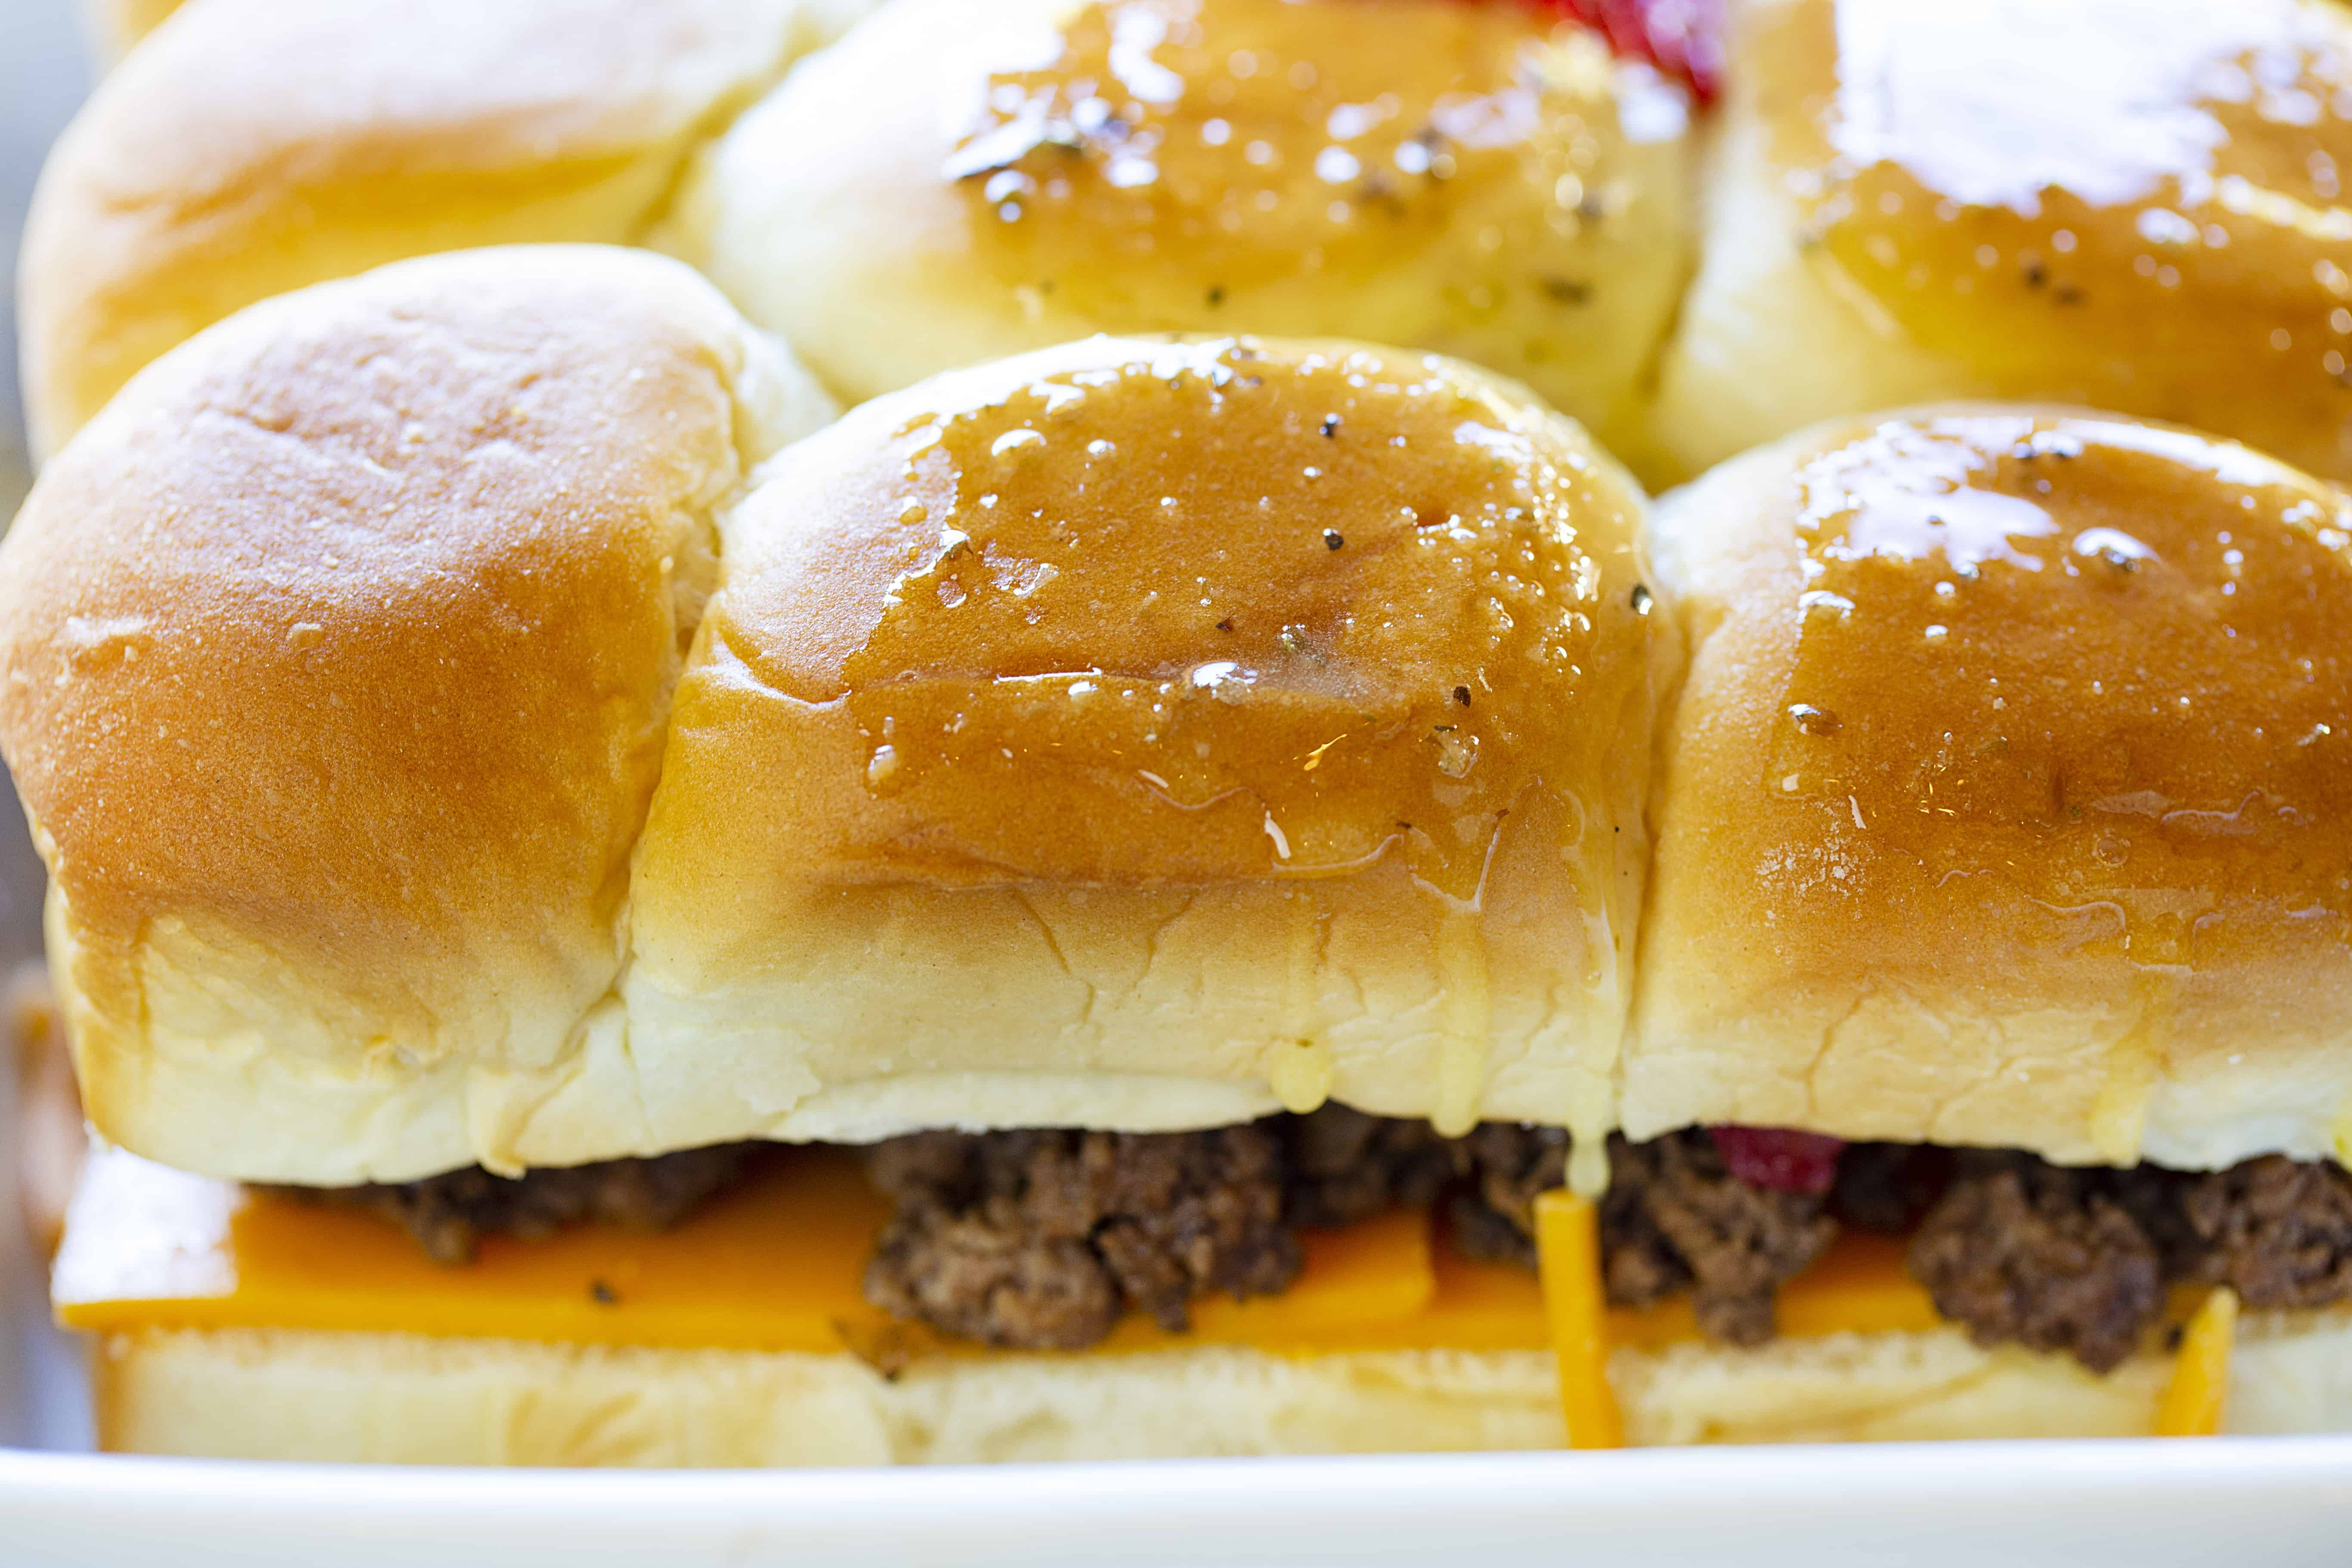 Buttered tops of Cheeseburger Sliders